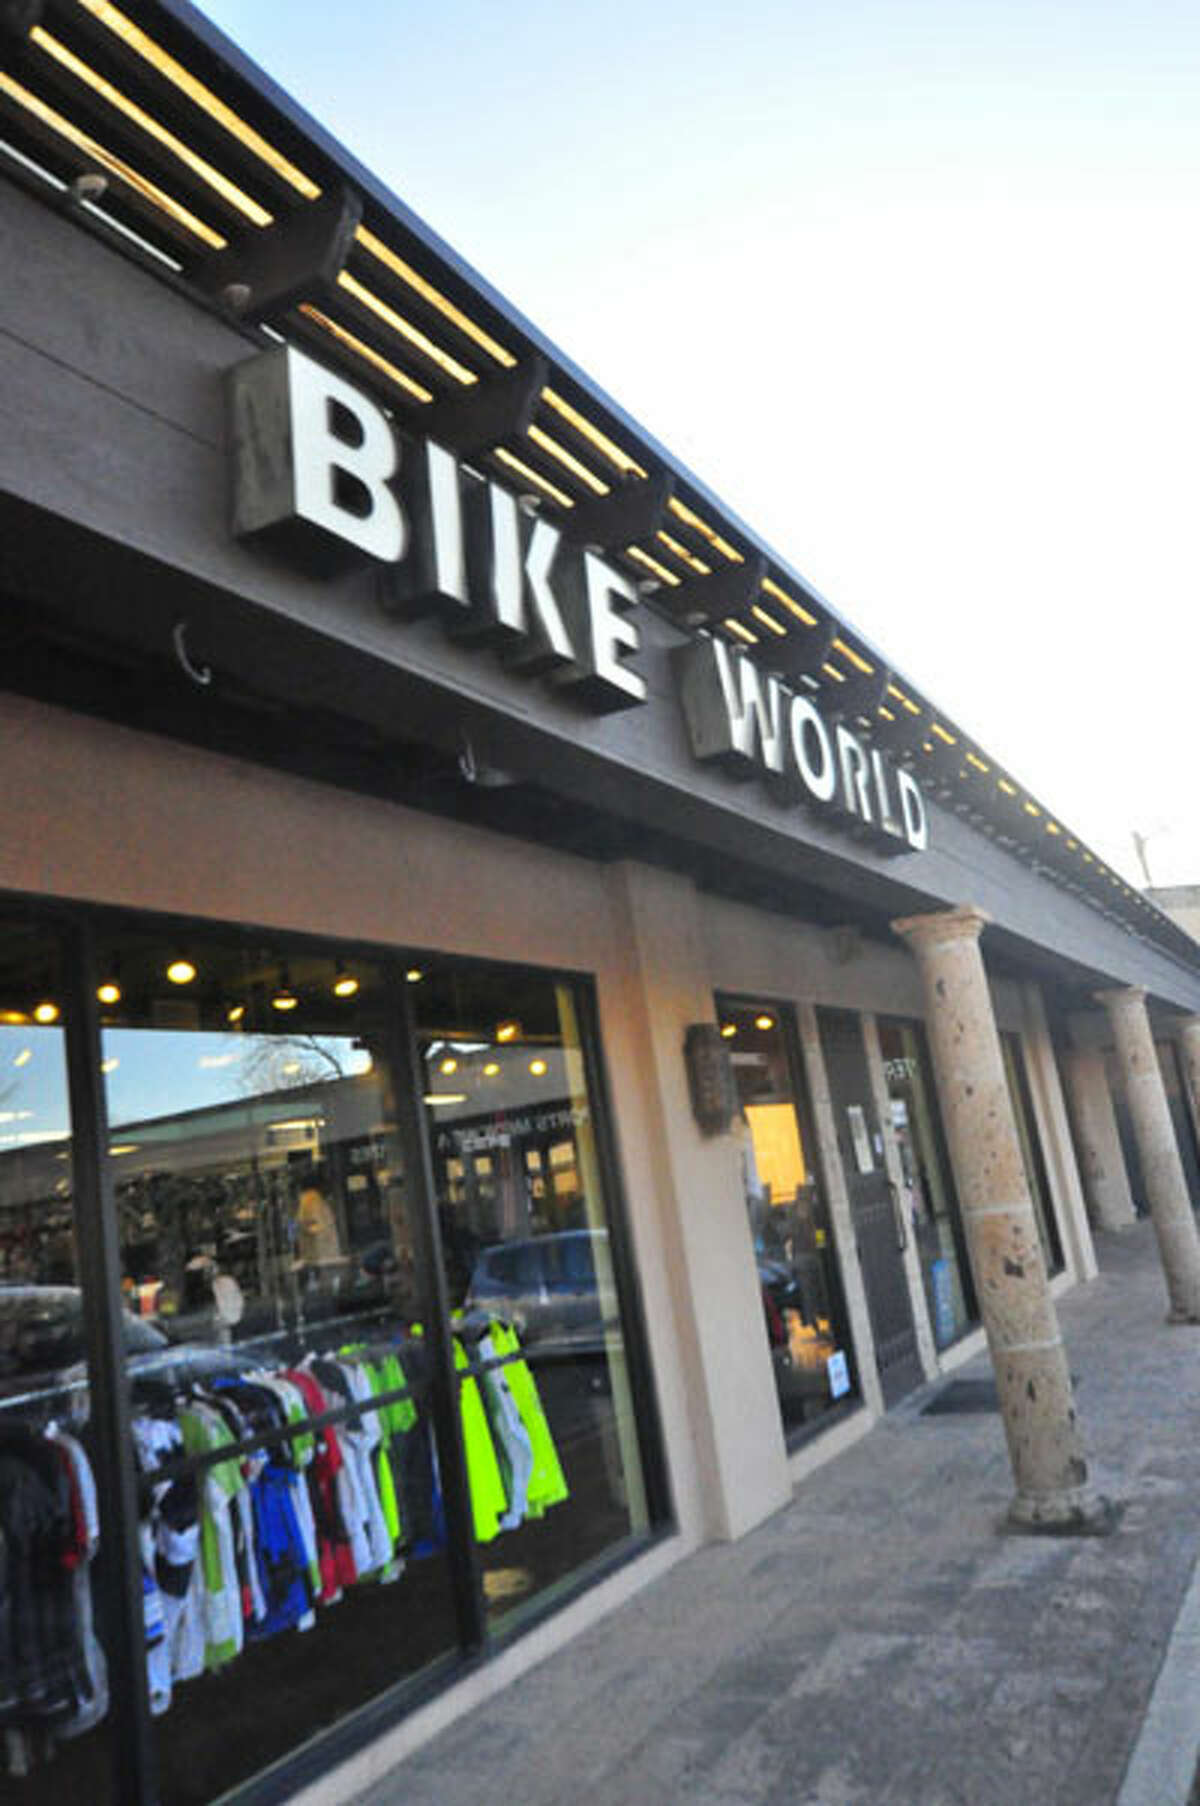 Bike World plans to open its fifth location in San Antonio, according to a recent Facebook post from the local business.